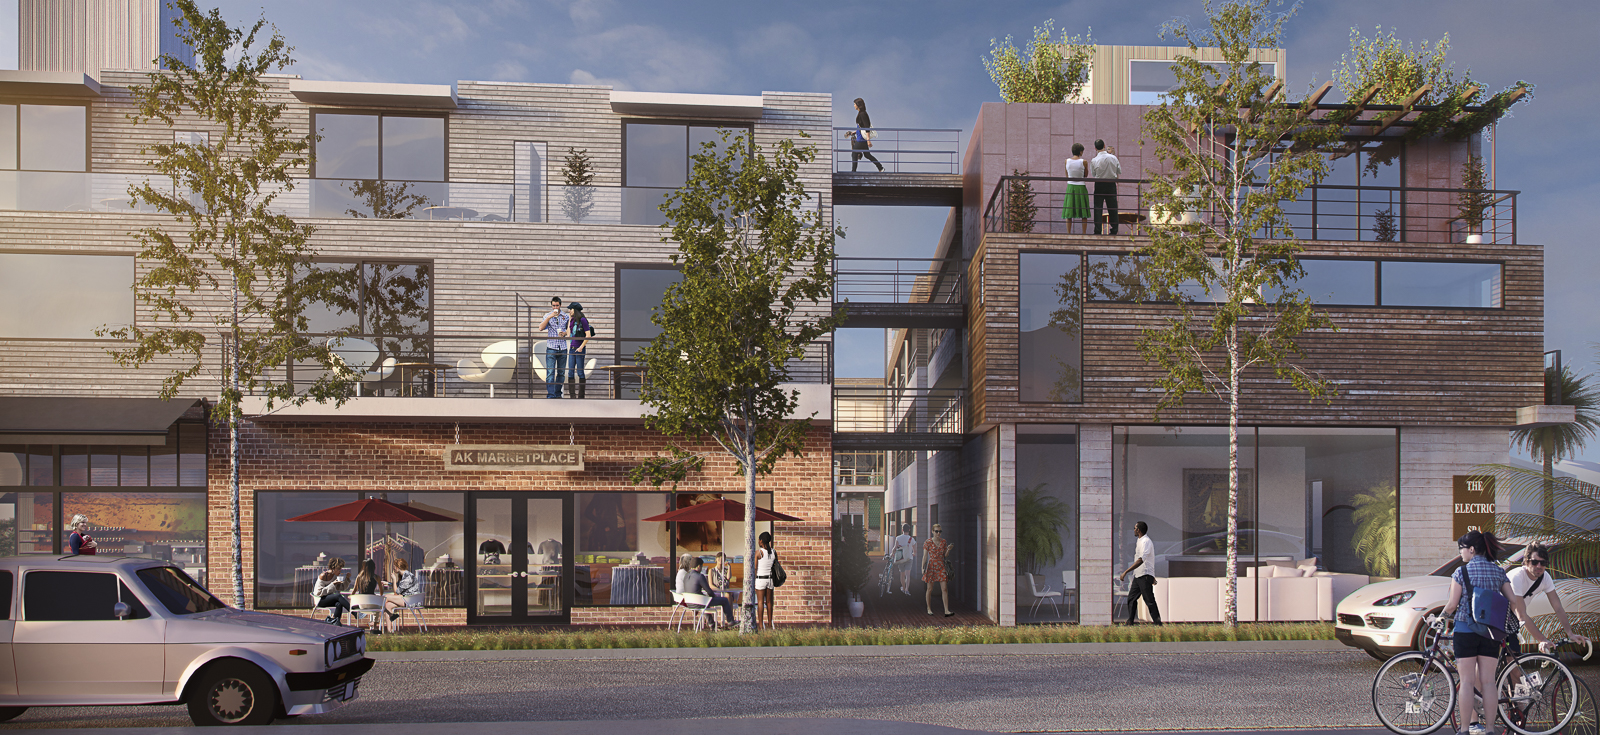 S.E.A.-Studio-Environmental-Architecture-David-Hertz-FAIA-Abbot-Kinney-Hotel-Venice-Place-adaptive-reuse-sustainable-regenerative-restorative-design-pedestrian-walkable-urbanism-local-community-context-modern-destination-inspired-resort-mixed-use-LA-5.jpg